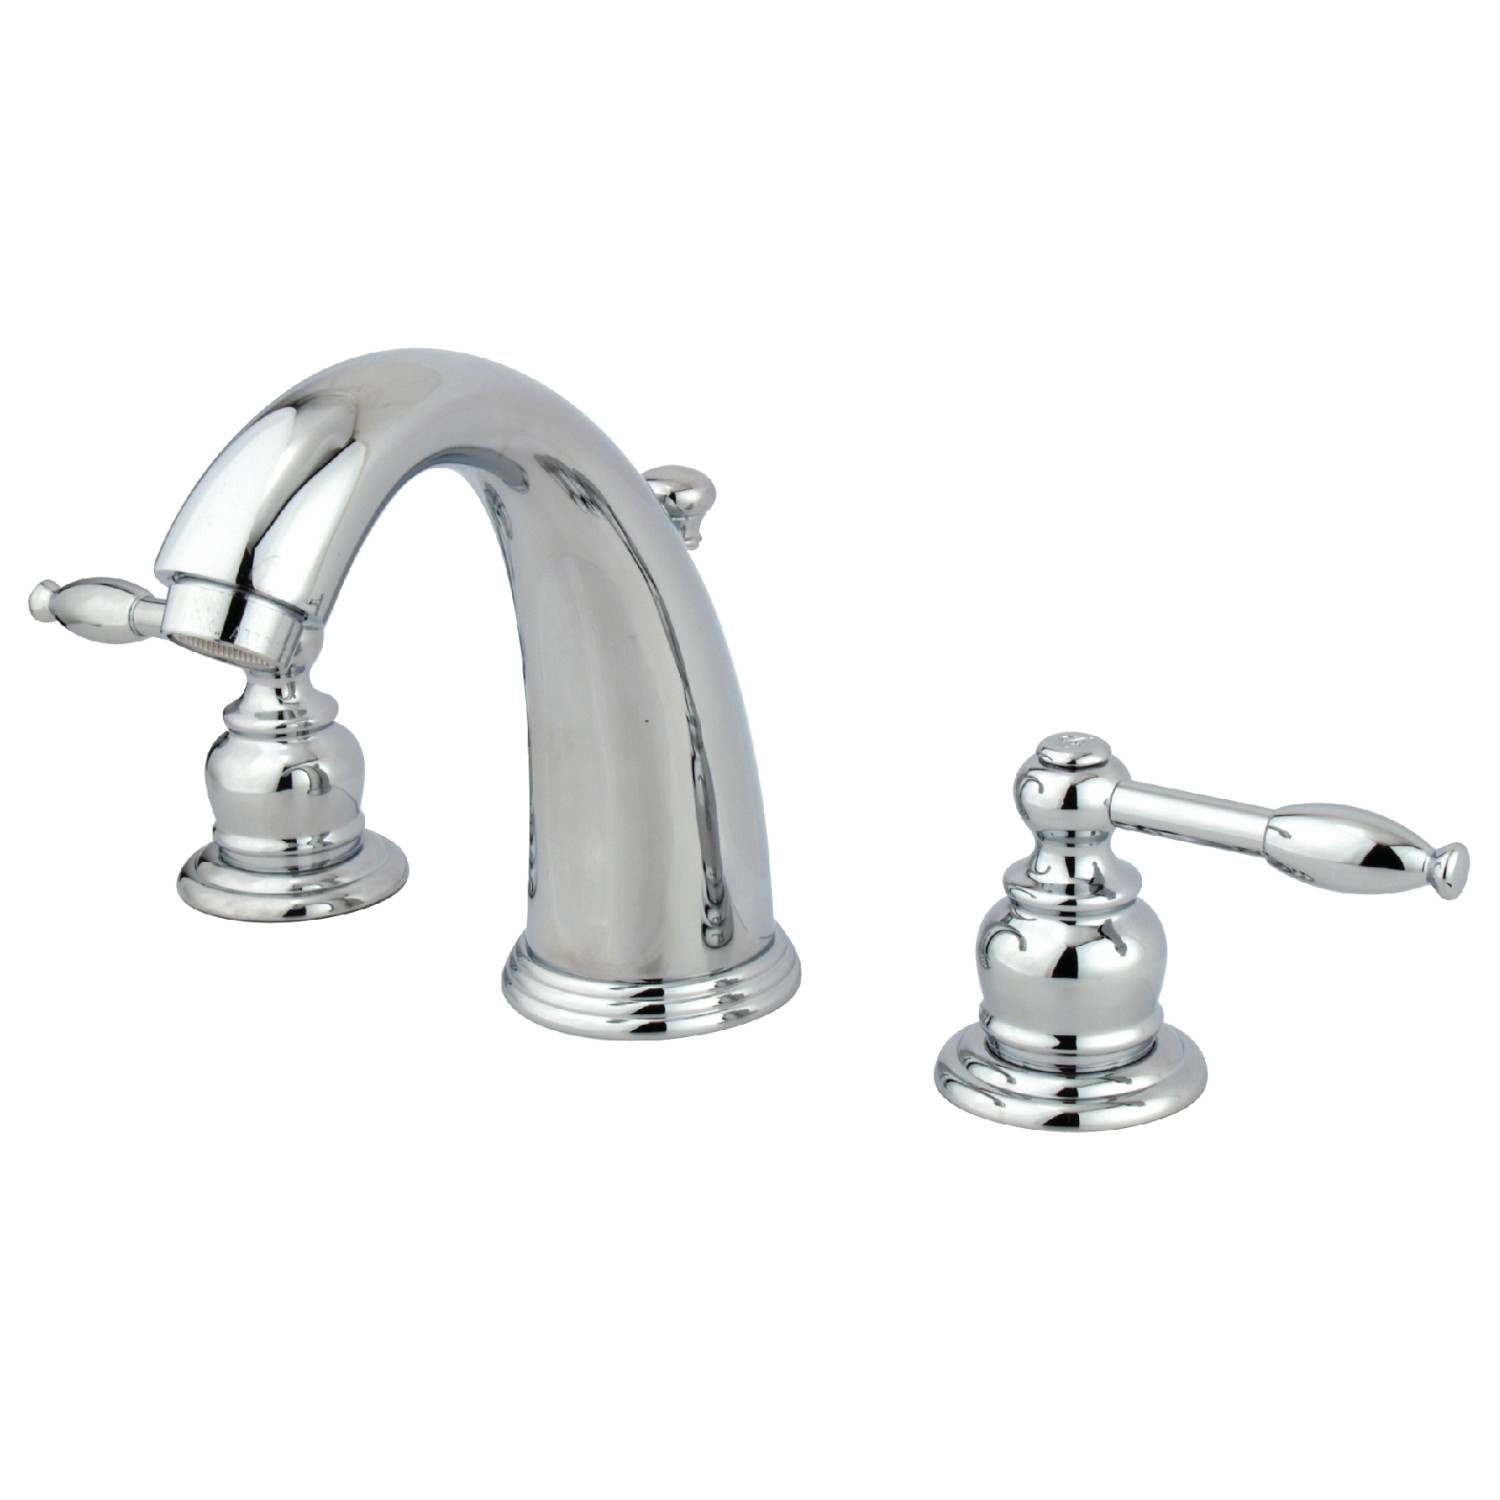 Traditional Two-Handle Three-Hole Deck Mounted Widespread Bathroom Faucet with Plastic Pop-Up in Polished Chrome with 4 Finish Option